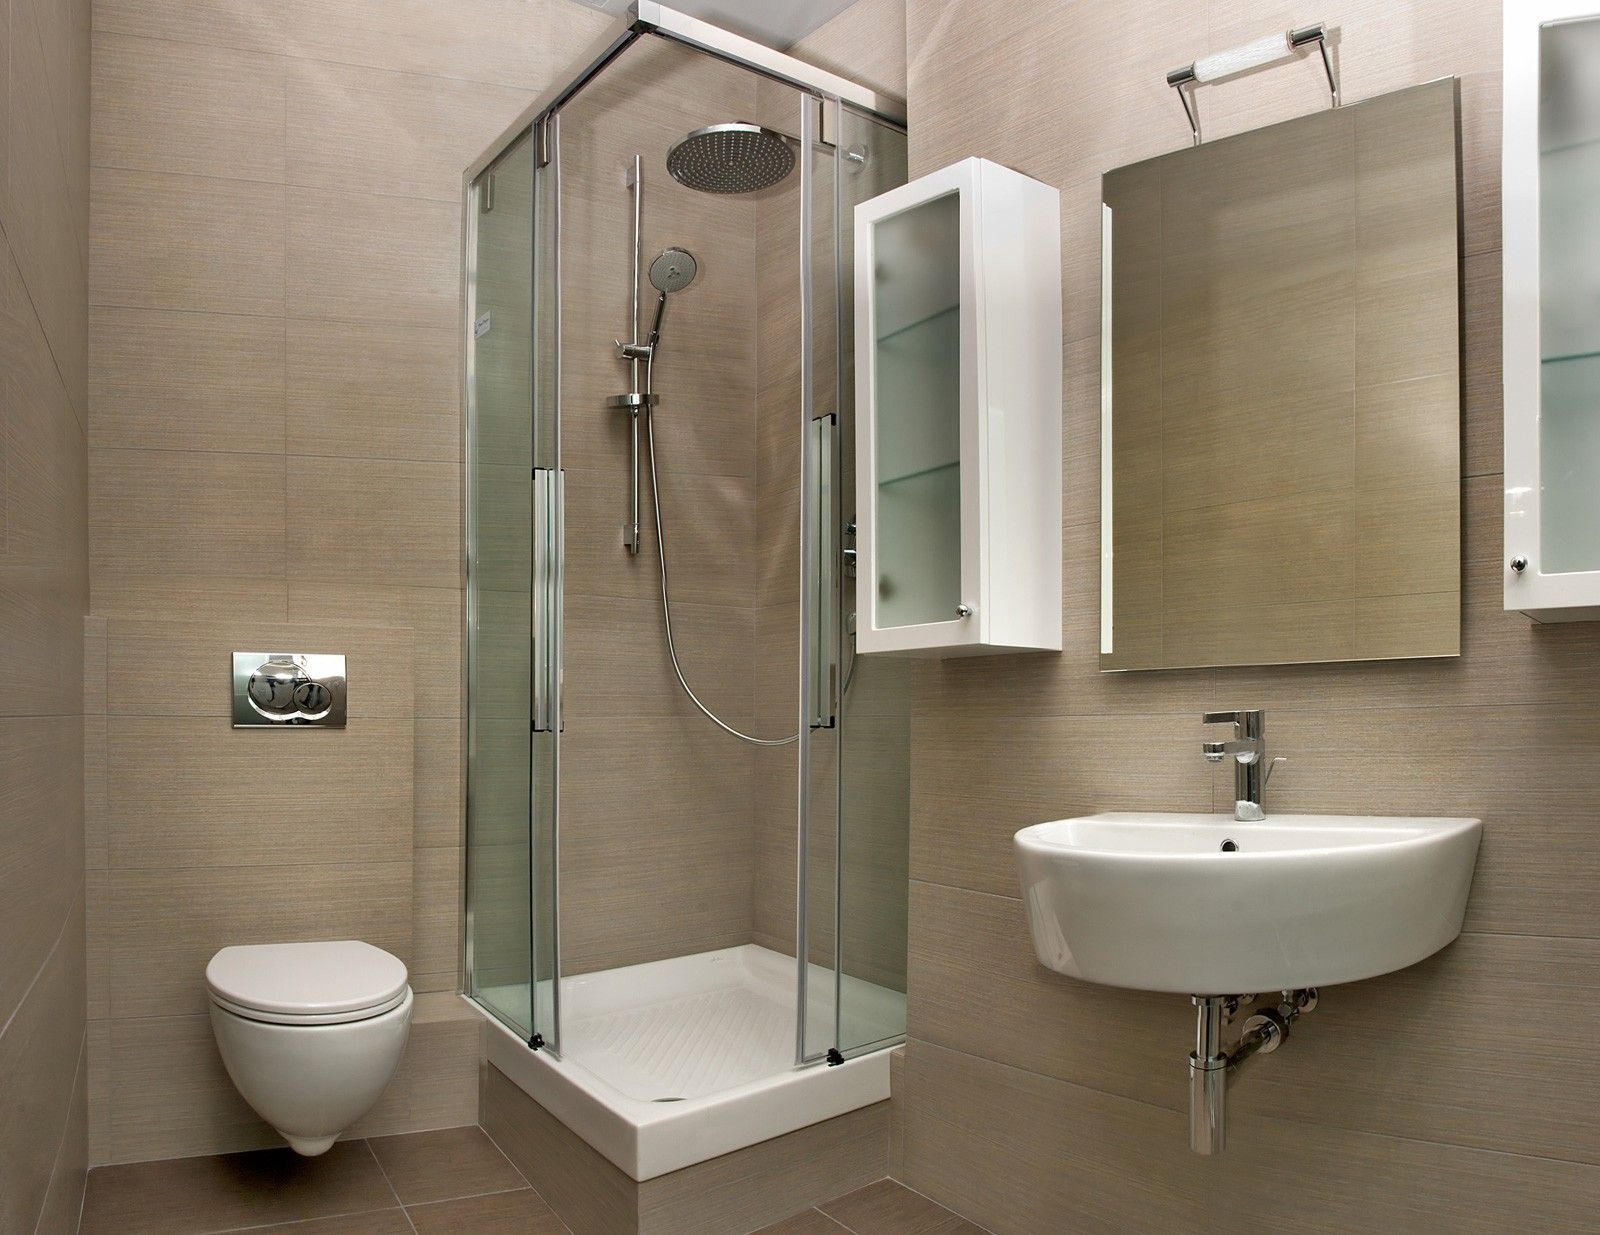 Photo Gallery Website Idyllic Bathroom Accessories Ideas Pictures And Inspirations Inspring Minimalist Bathroom Design With Glass Shower Cubicle And Floating Washbasin As Well